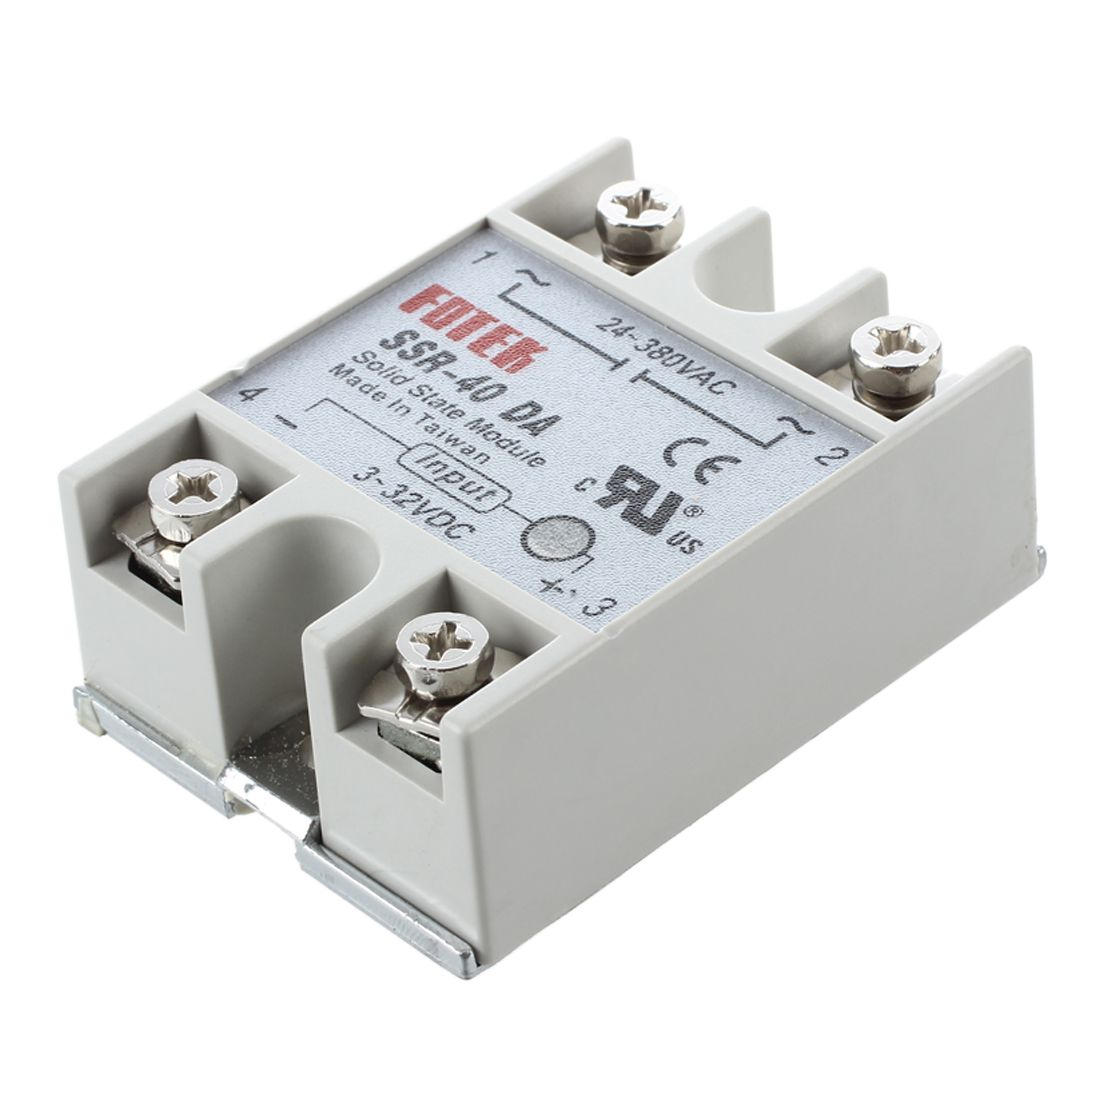 Dsha New Hot Temperature Control Solid State Relay Ssr 40da 40a Latch Up 3 32v